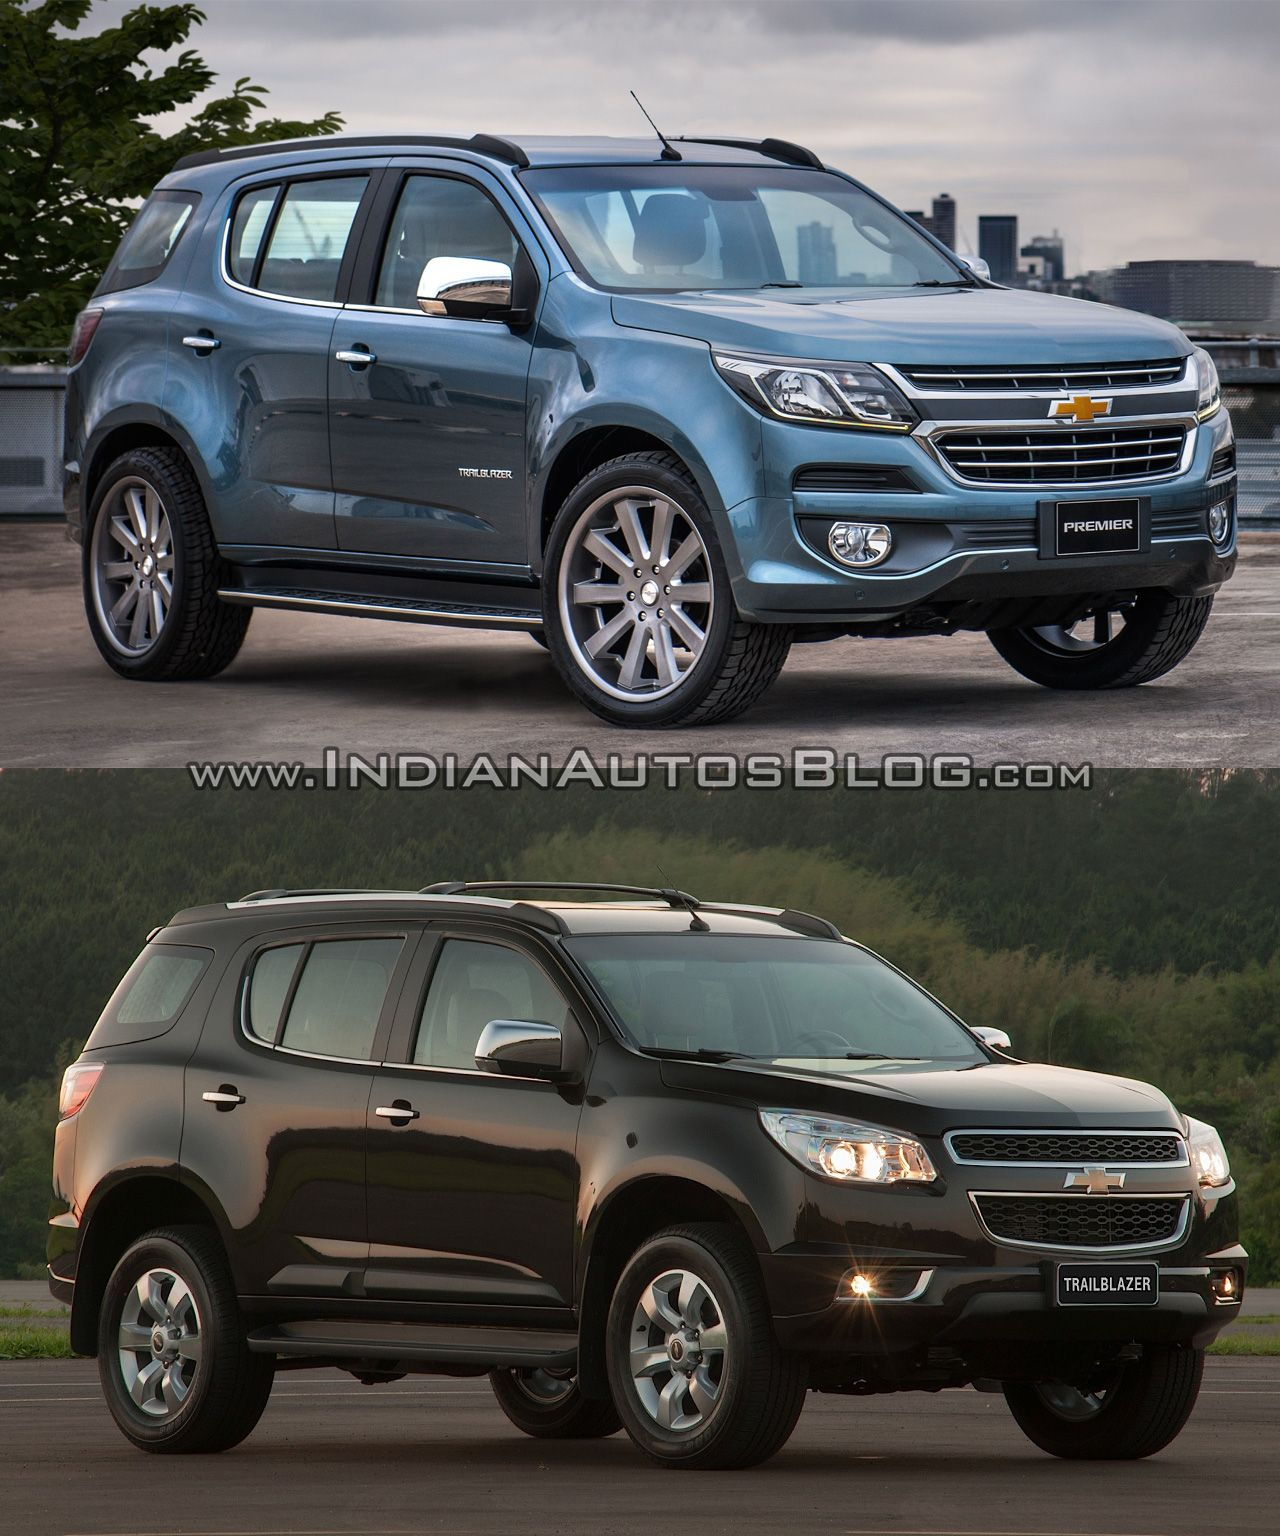 Chevrolet Trailblazer Premier (facelift) Vs Older Model